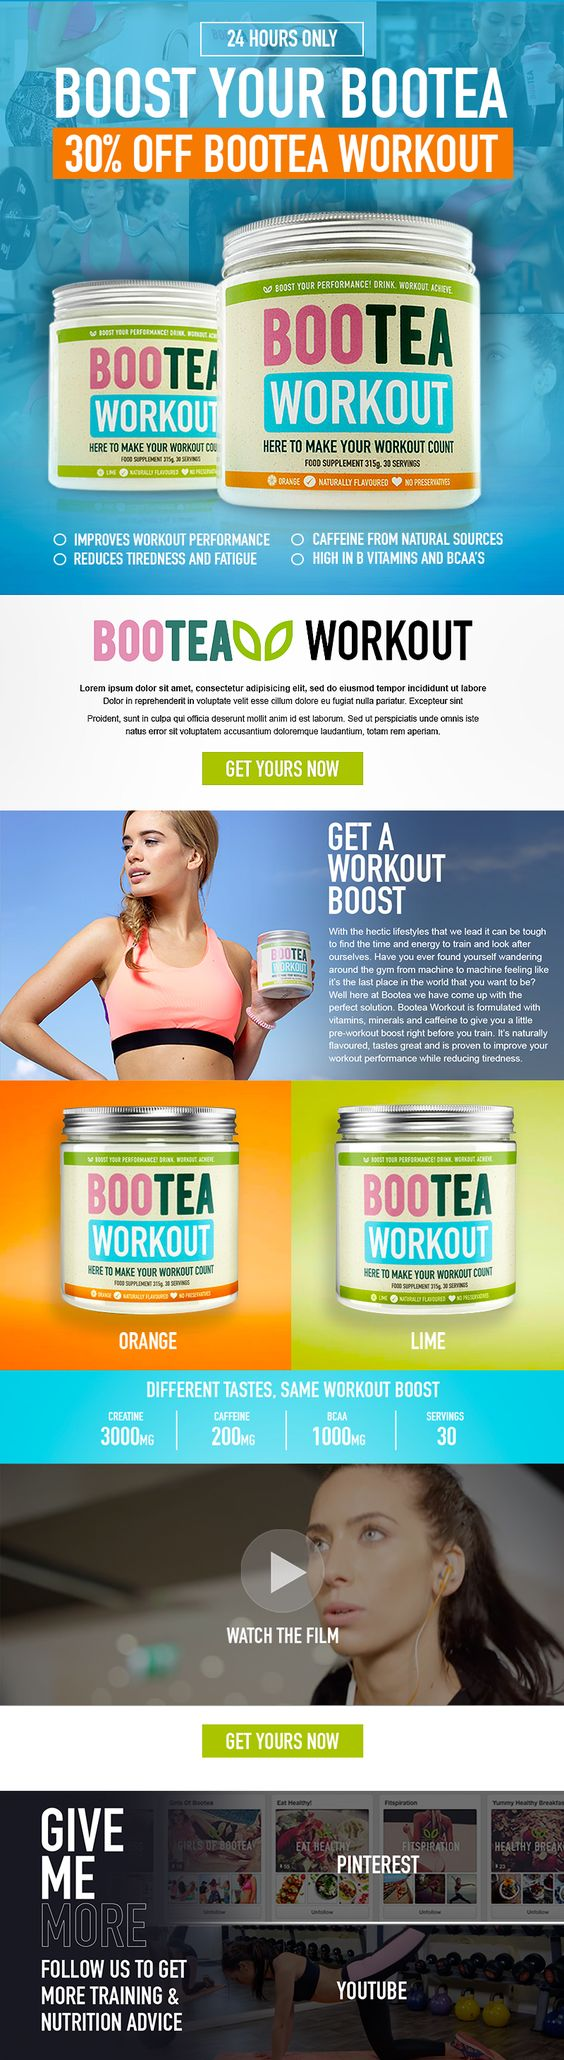 Power through your workout sessions and maximise your training. Mix & drink 30 minutes before you hit the gym or exercise to increase your physical performance & reduce fatigue. Now you can push for the results you want. The Bootea Workout has no artificial colours or preservatives and contains caffeine from natural sources. It's high in B vitamins & BCAAs to help you work towards your health & fitness goals. The Bootea Workout is available worldwide, just in time for summer!